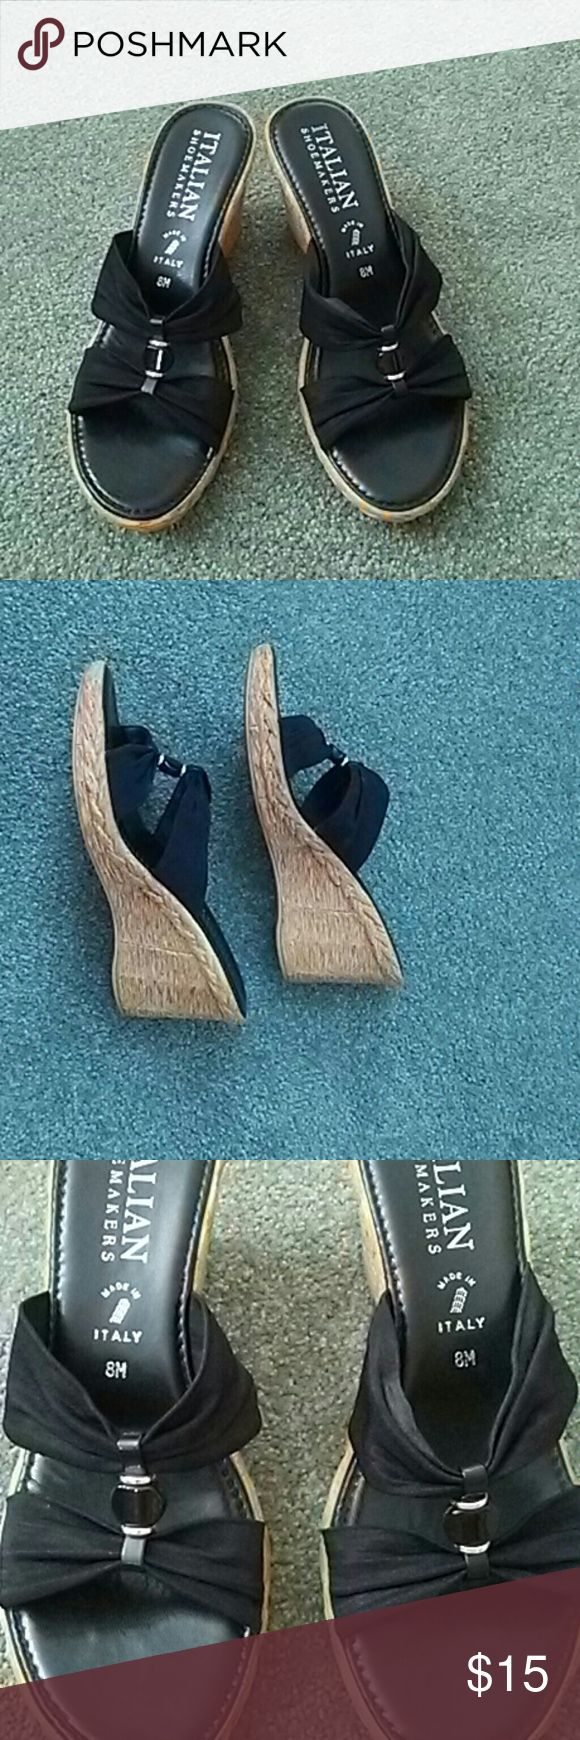 Black wedge sandals An Italian shoe that fits comfortably and looks great with jeans, dresses and even shorts Italian Shoemakers Shoes Wedges